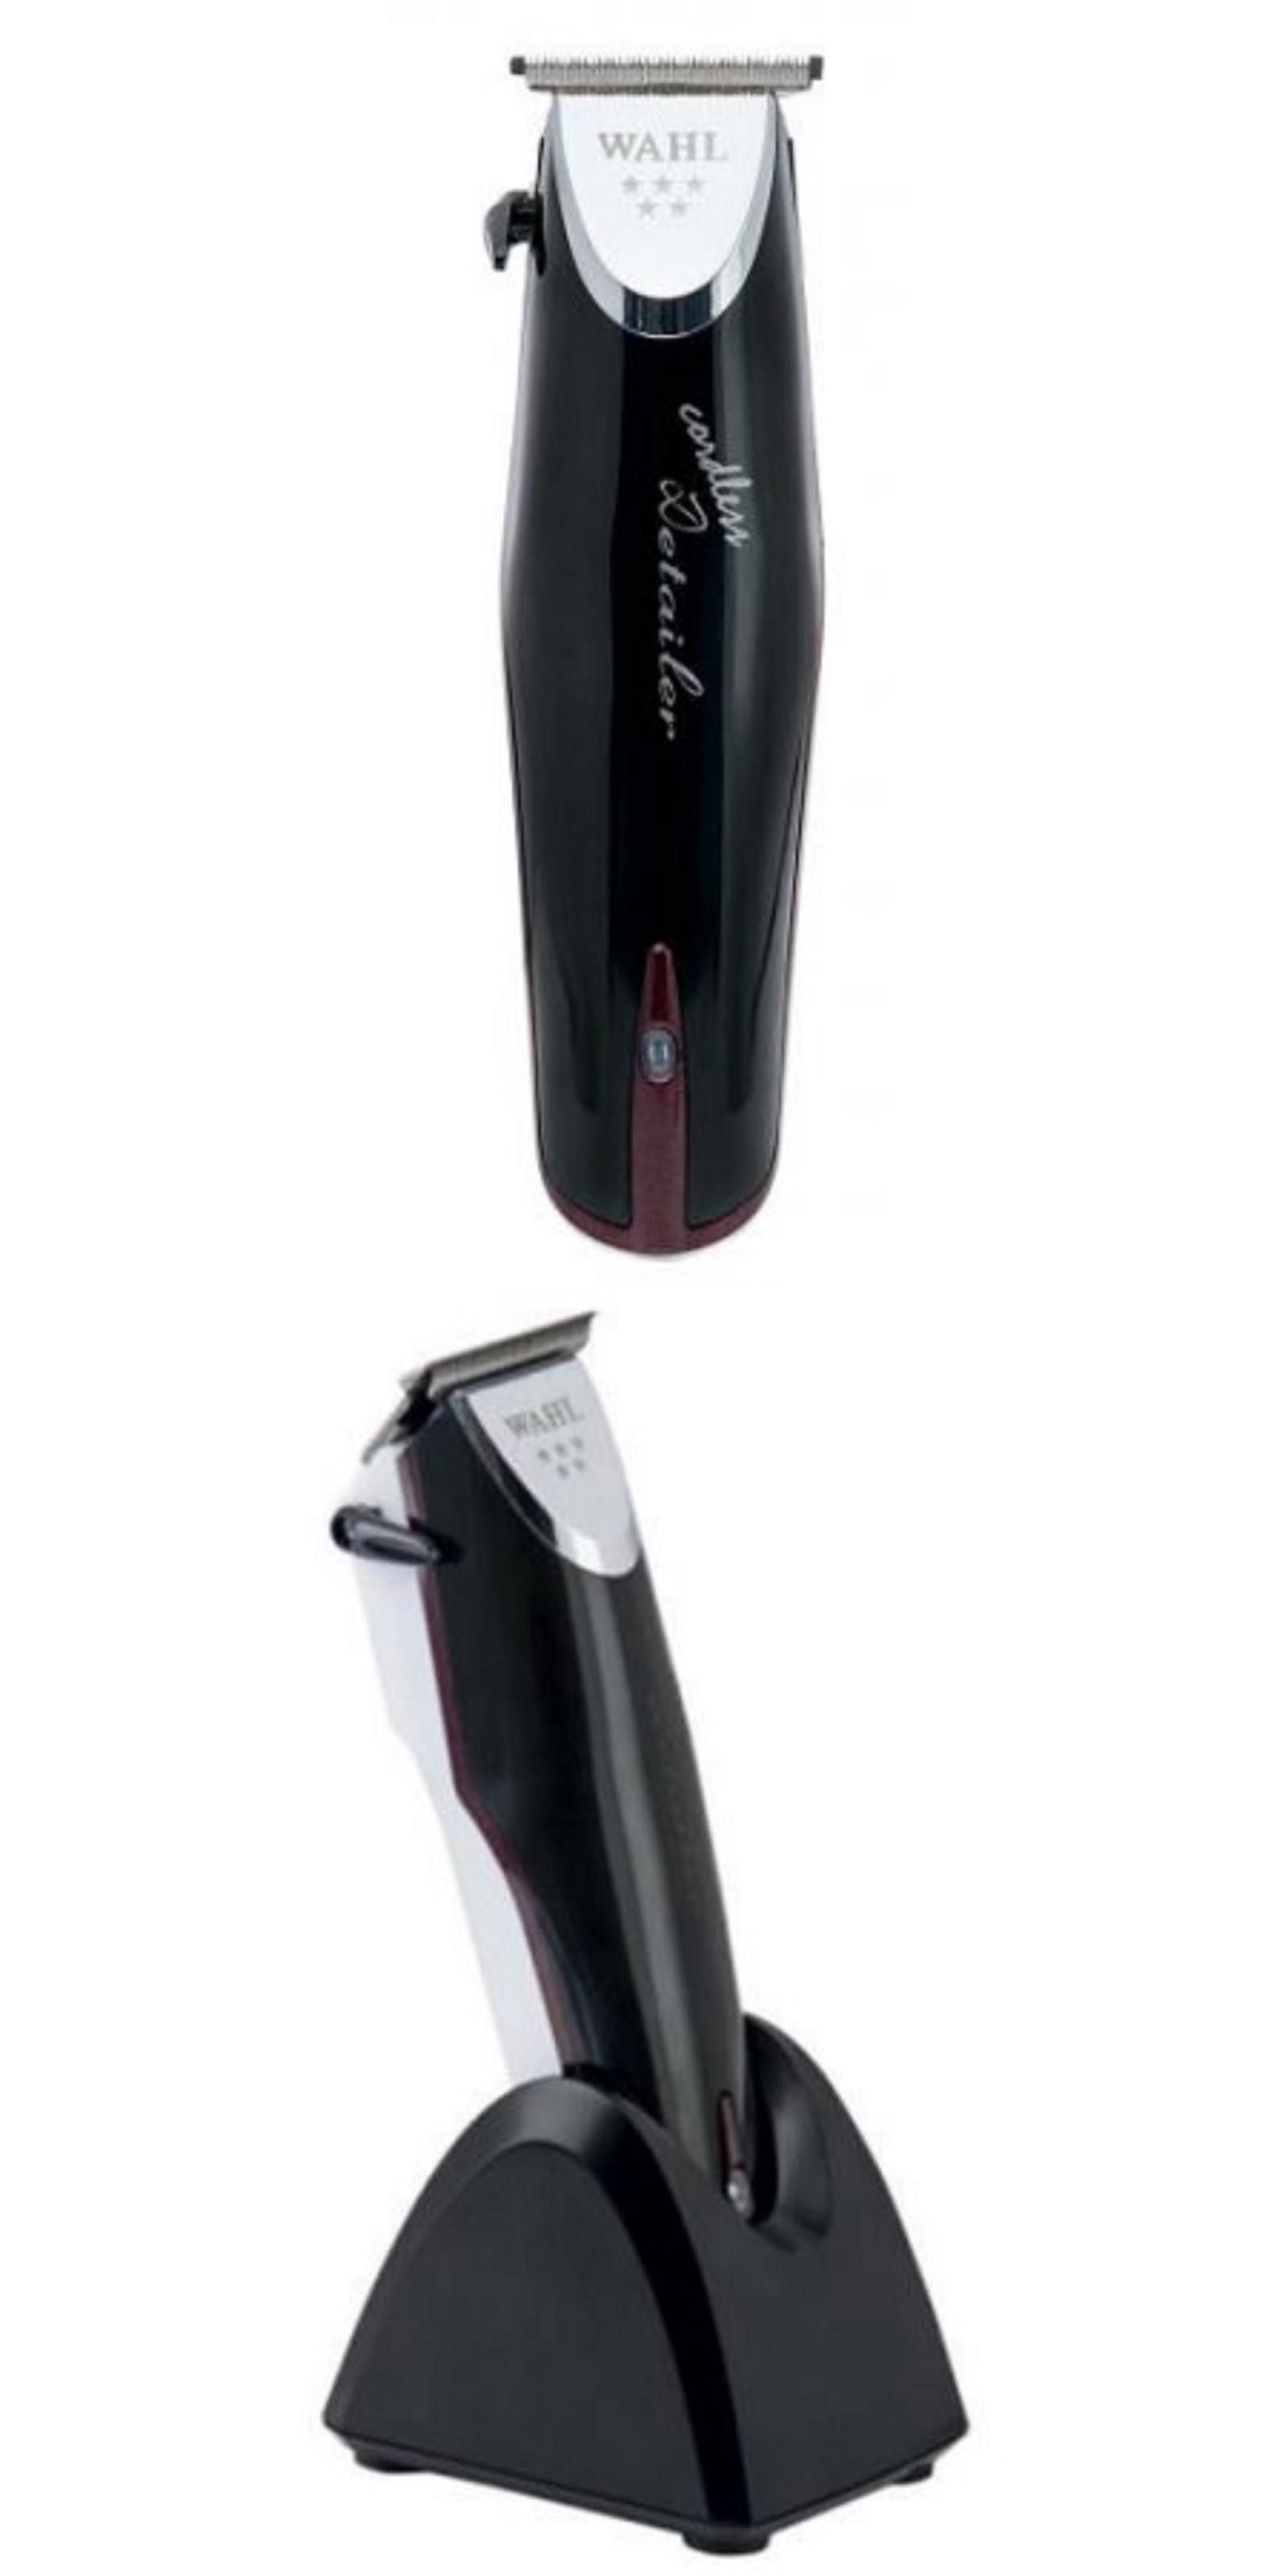 Clippers and Trimmers 67408 Wahl Professional 8163 5Star